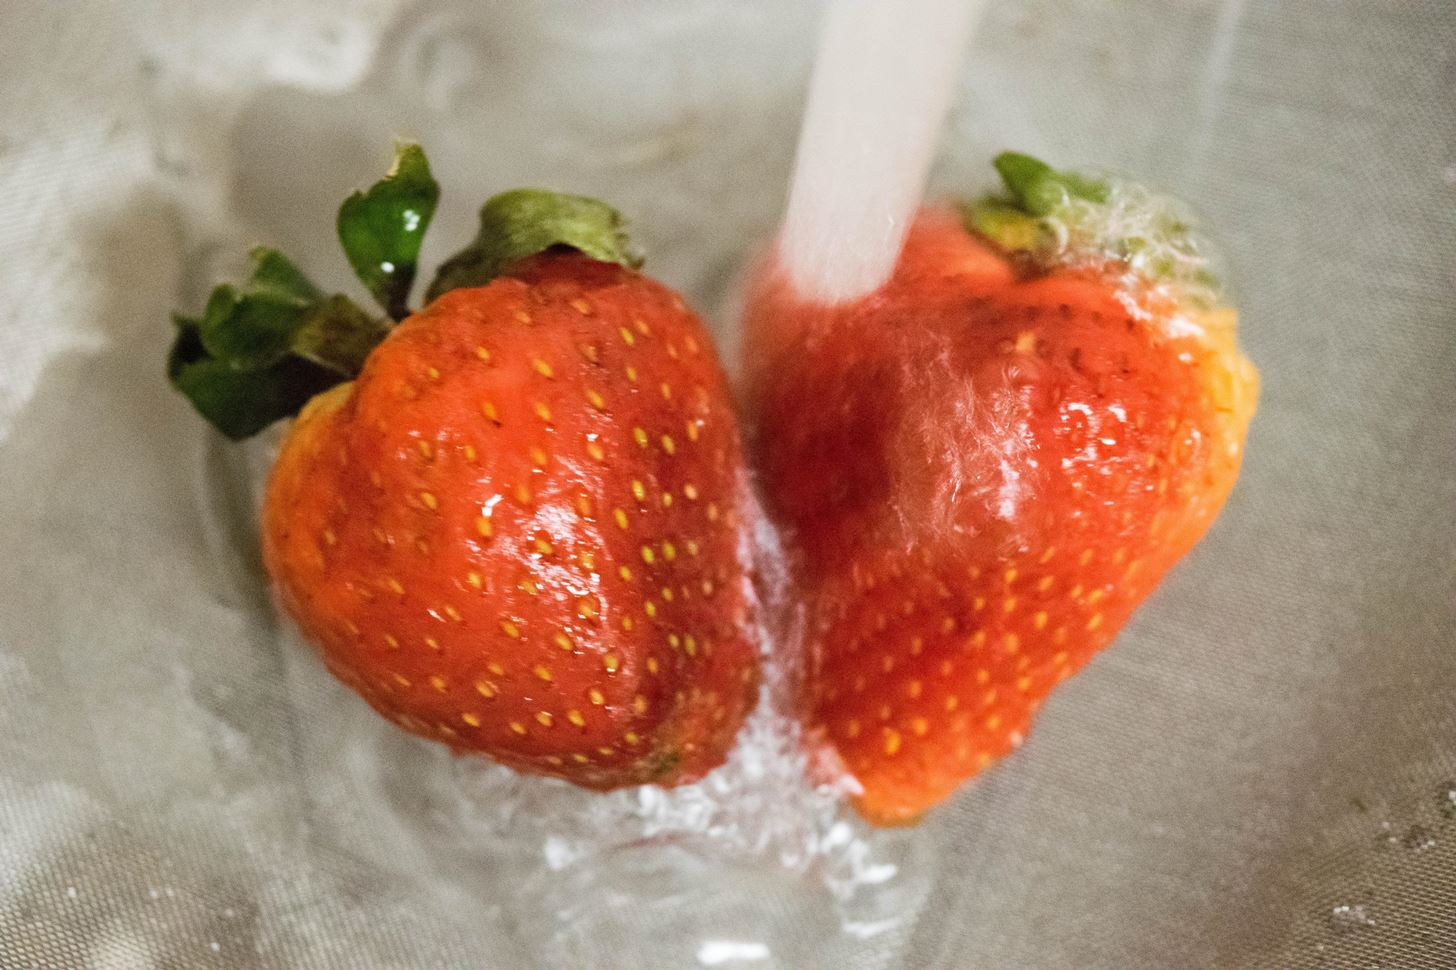 Tested: The Best Way to Keep Strawberries Fresh